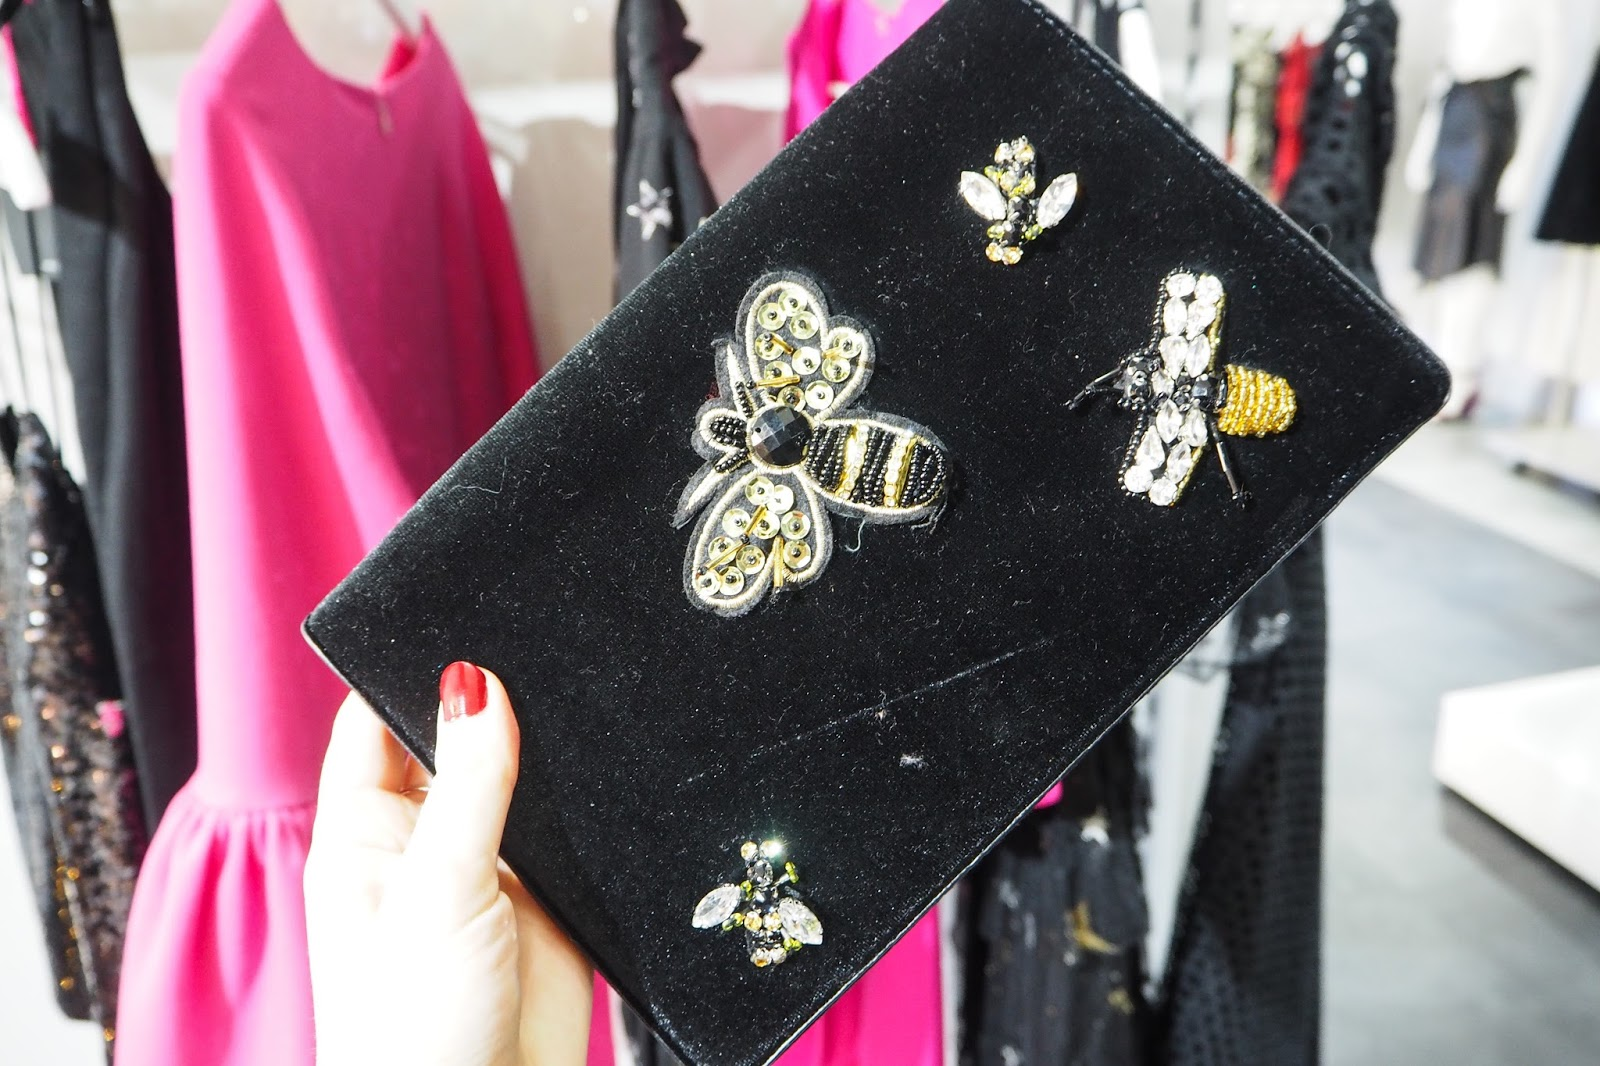 Very Partywear #VeryParty - Bee Clutch Bag